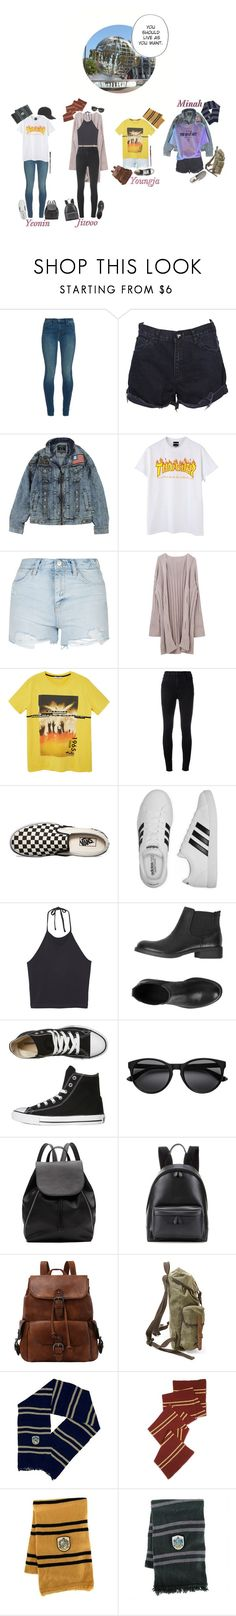 """Universal Studios: 4U"" by real4u ❤ liked on Polyvore featuring J Brand, OneTeaspoon, Topshop, MANGO, Vans, adidas, Monki, Universal, ESPRIT and Converse"